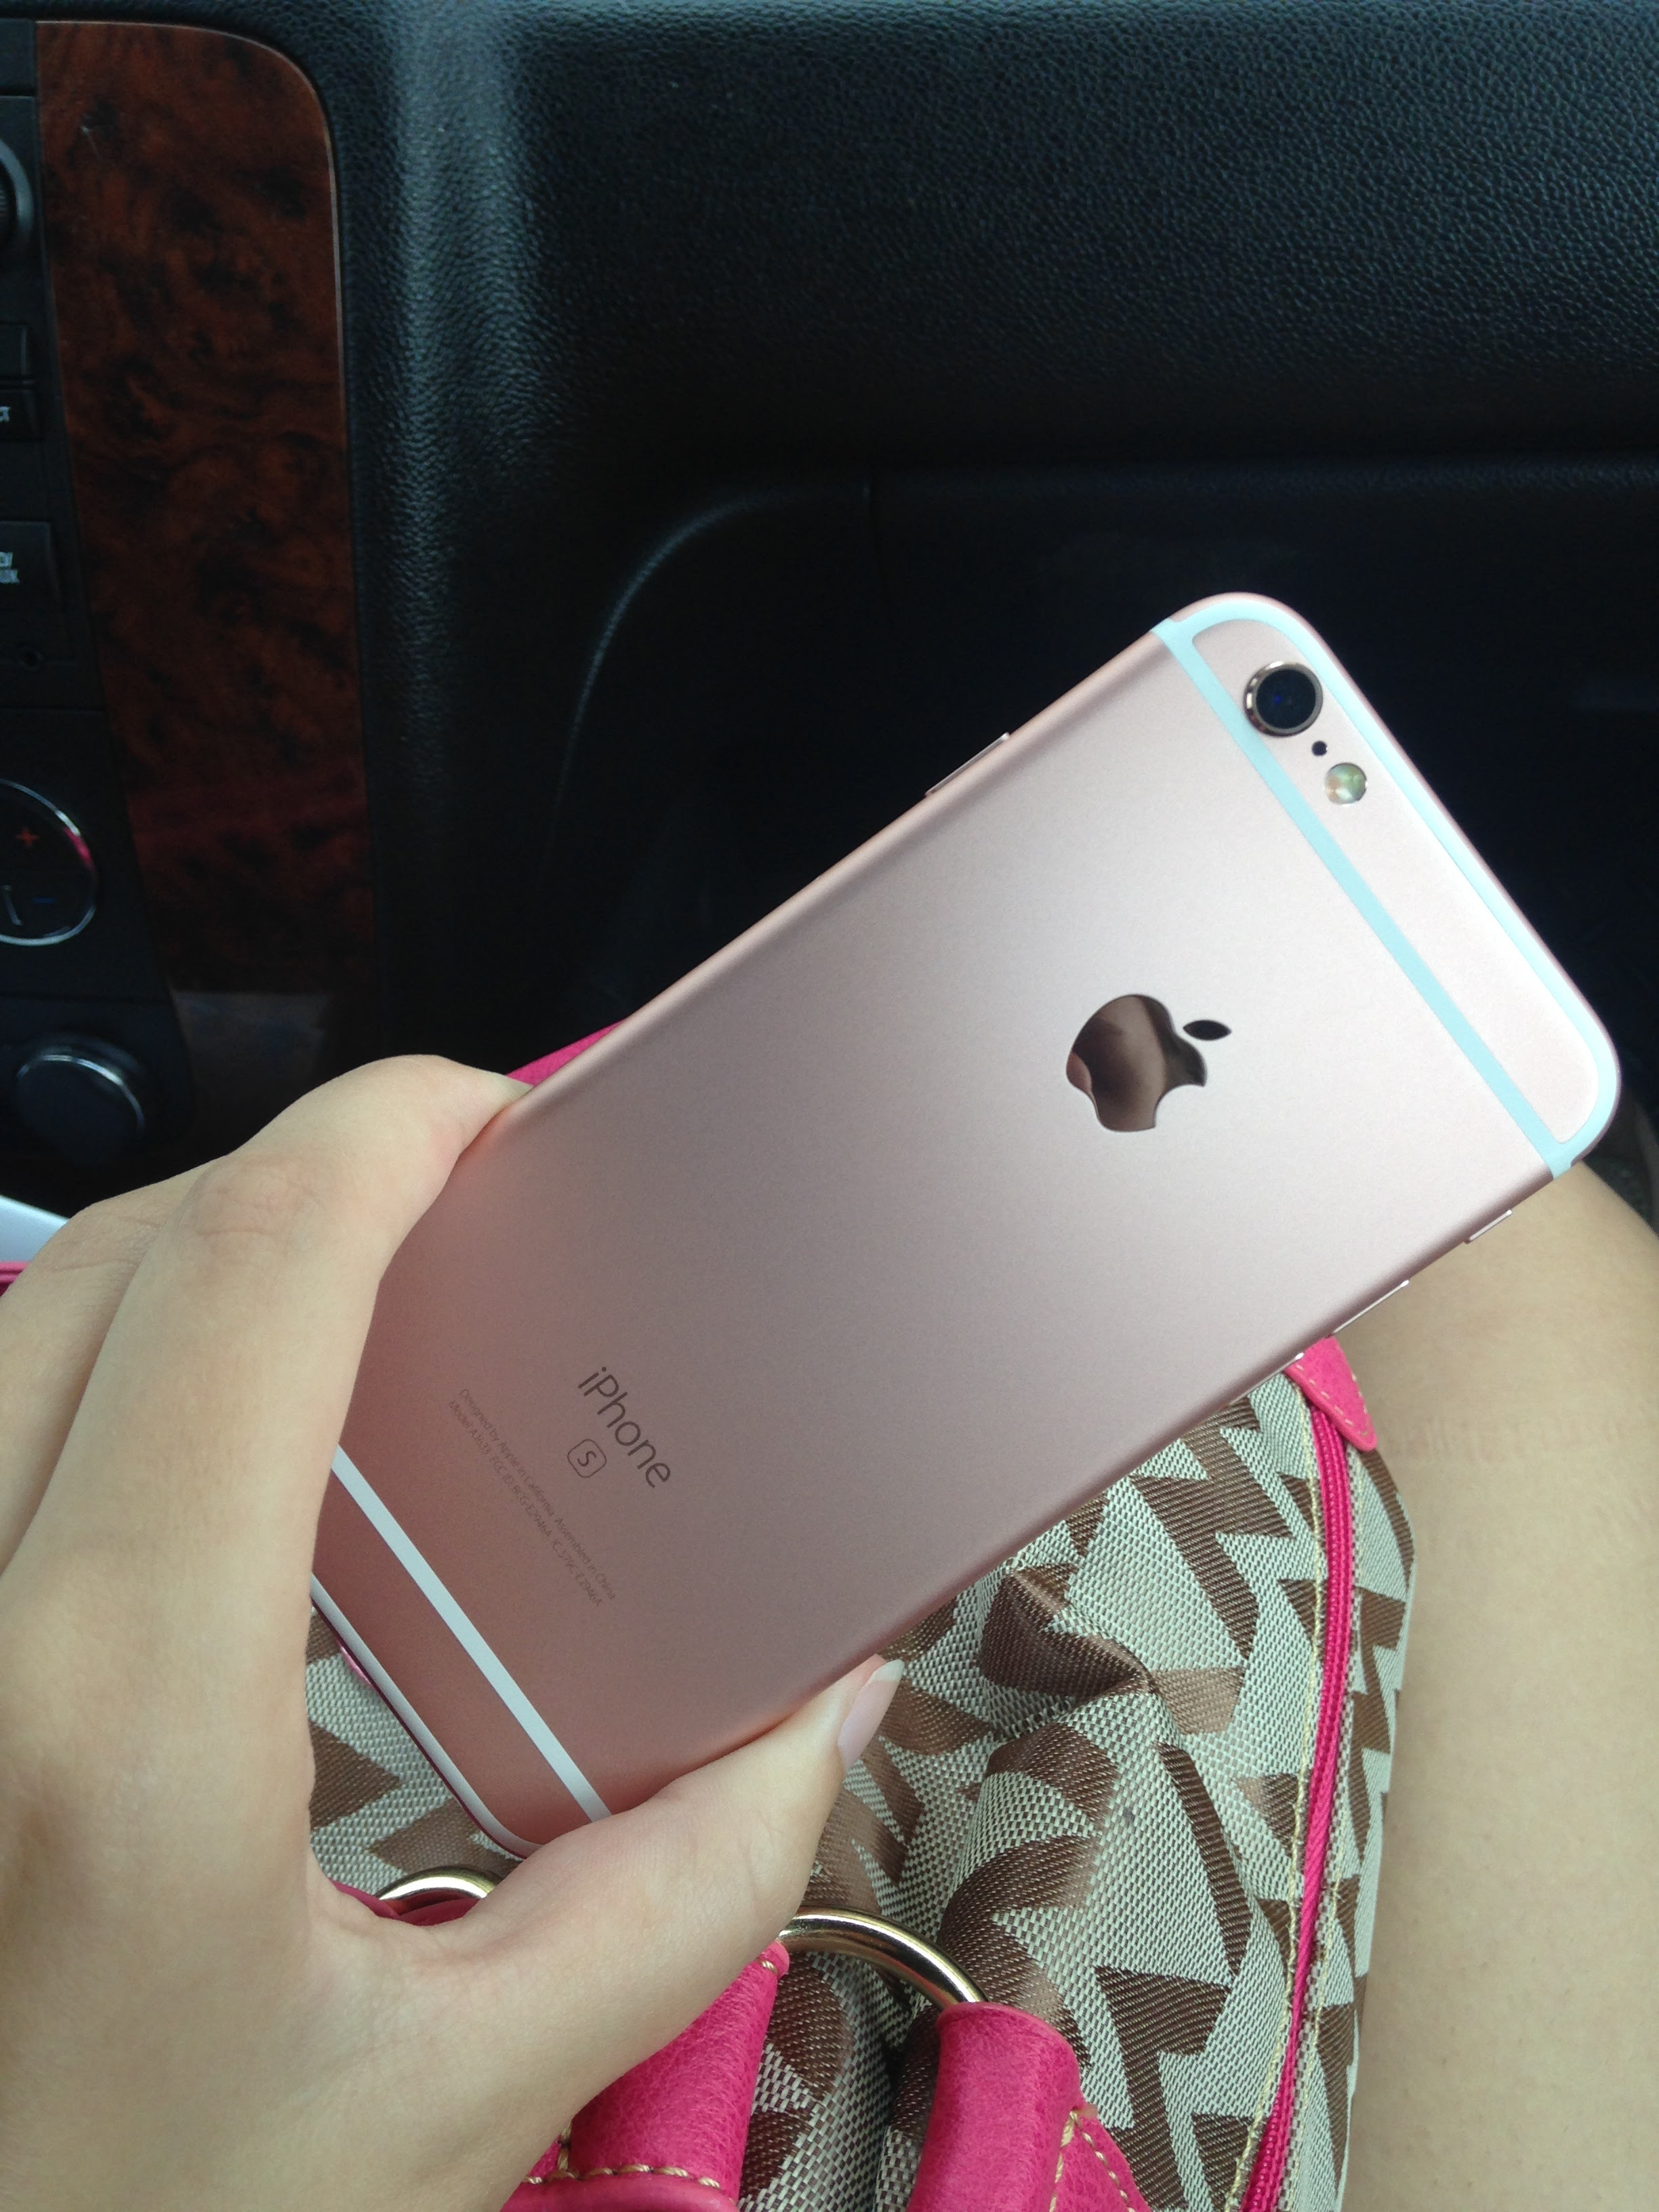 the phone I have now...an iPhone 6s in the gorg rose gold color -